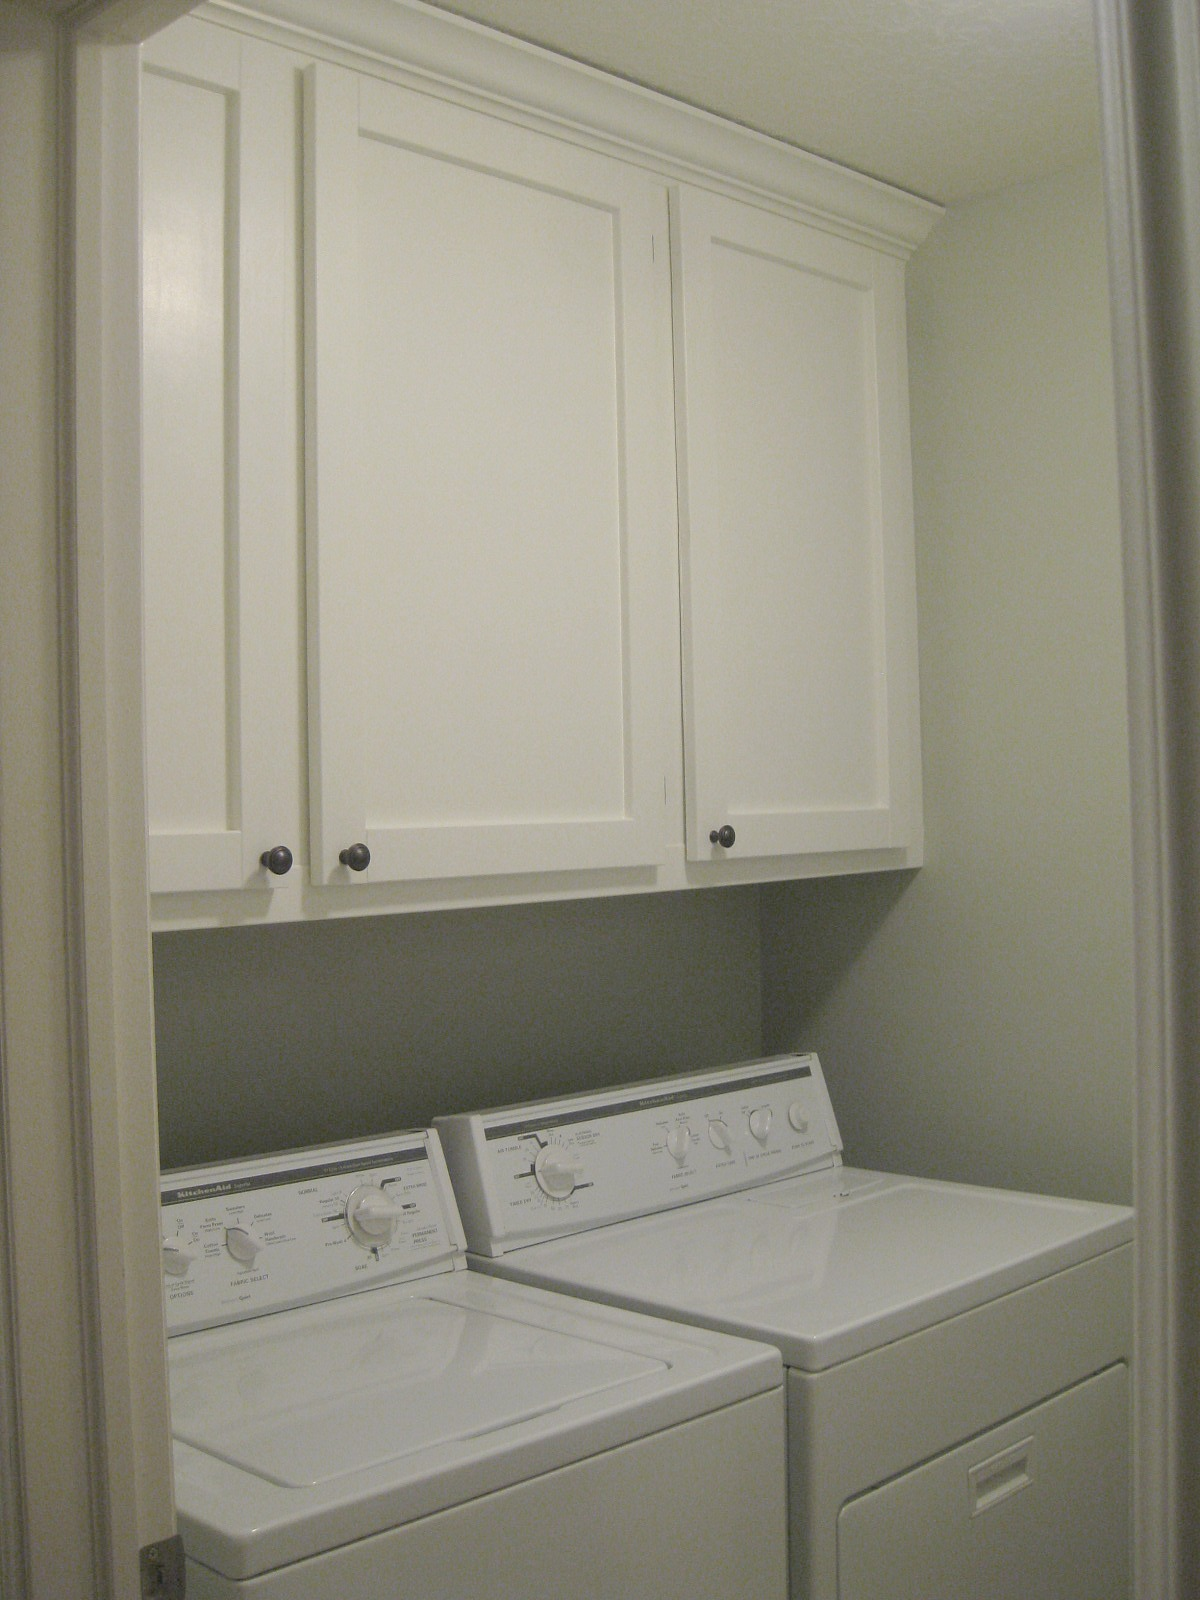 TDA decorating and design: Laundry Room Cabinet Tutorial ... on Laundry Room Cabinet Ideas  id=14910